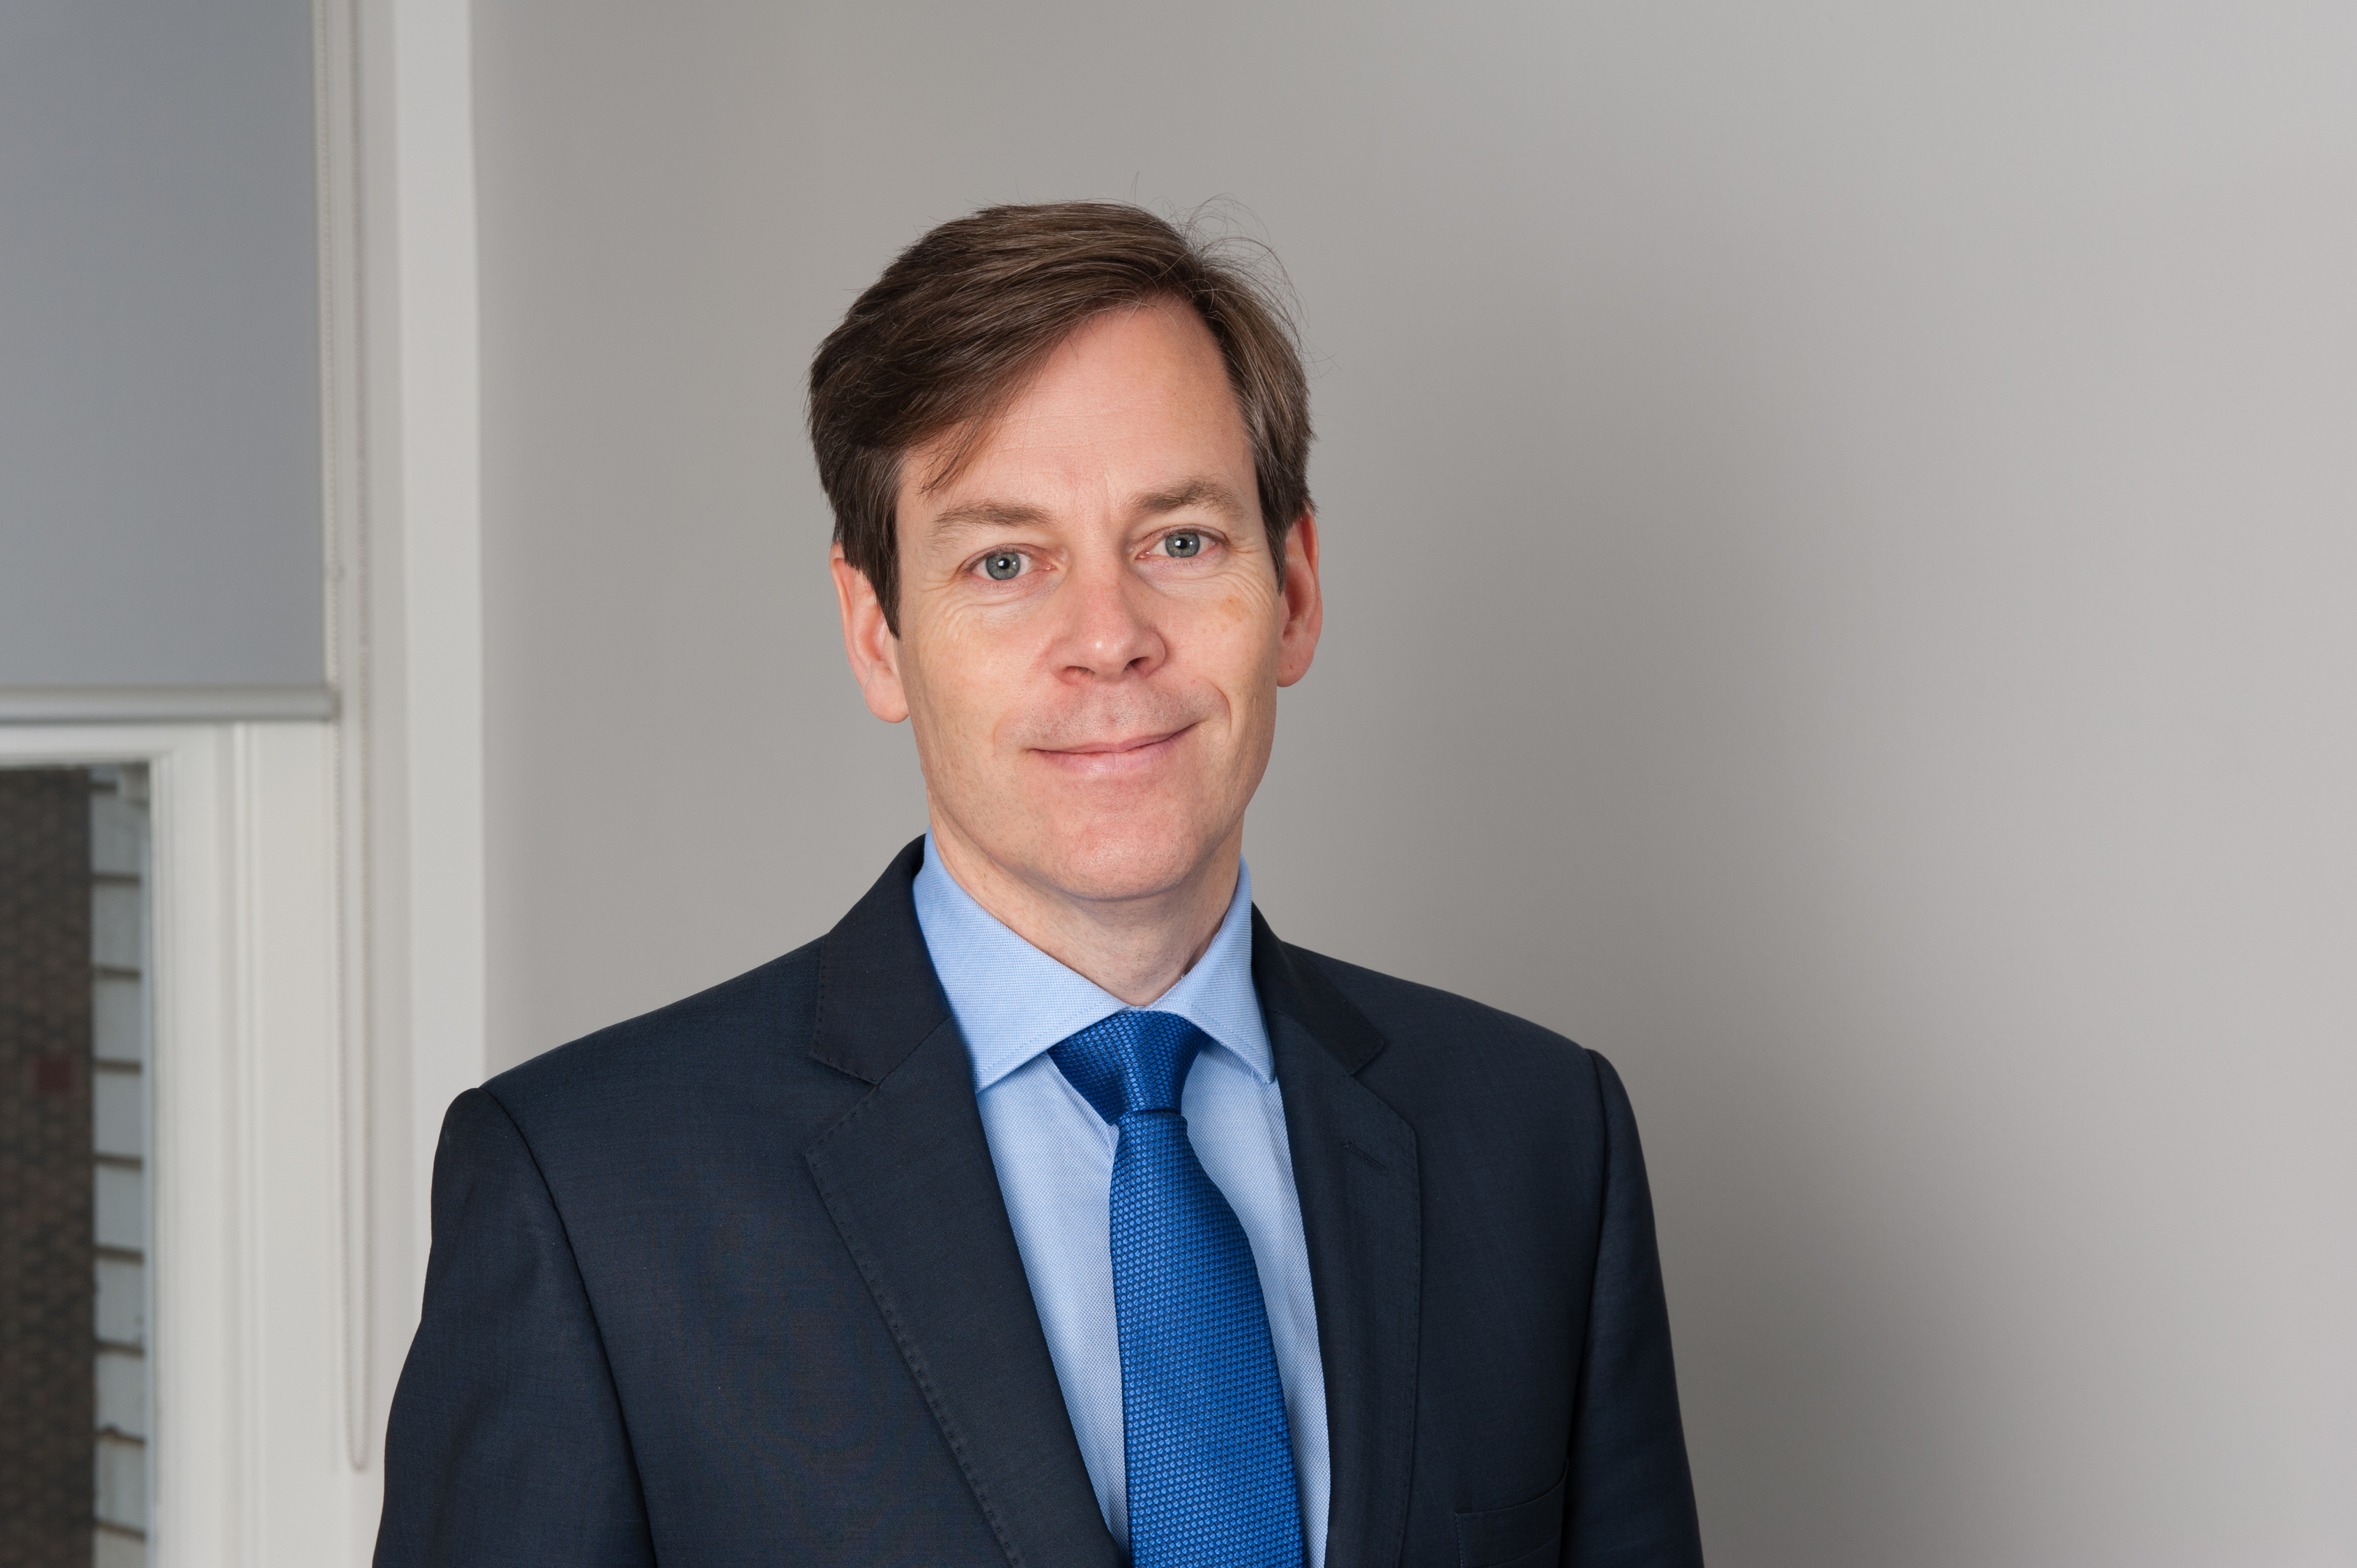 Chris Walcot, CEO of Progressive Technology Solutions